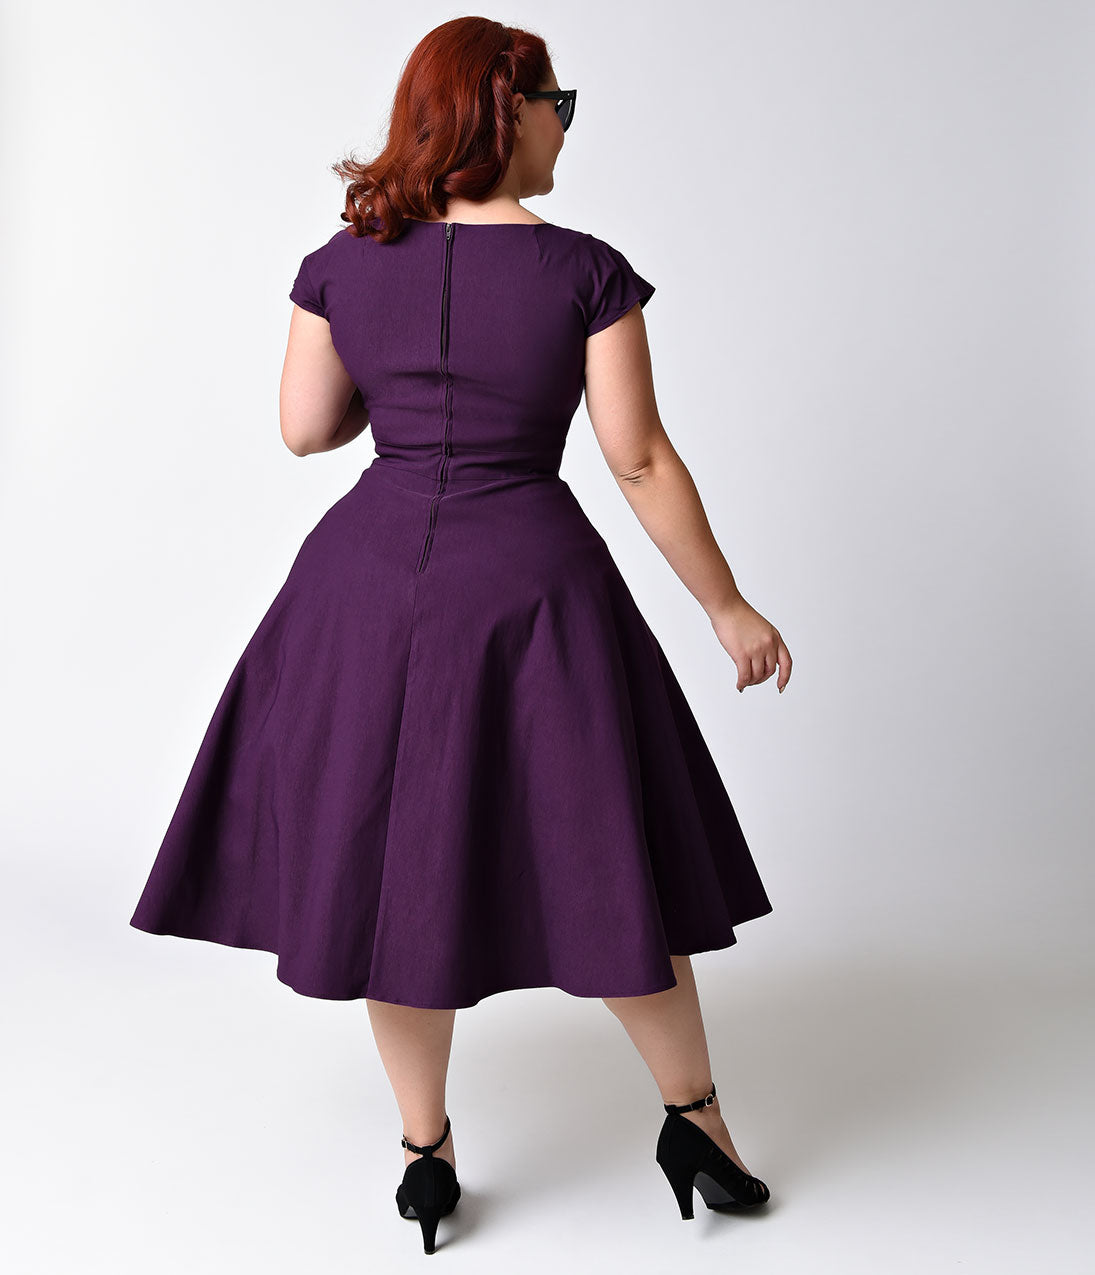 Plus Size Vintage Pin Up Clothing   Dresses – Unique Vintage df8bf3159732